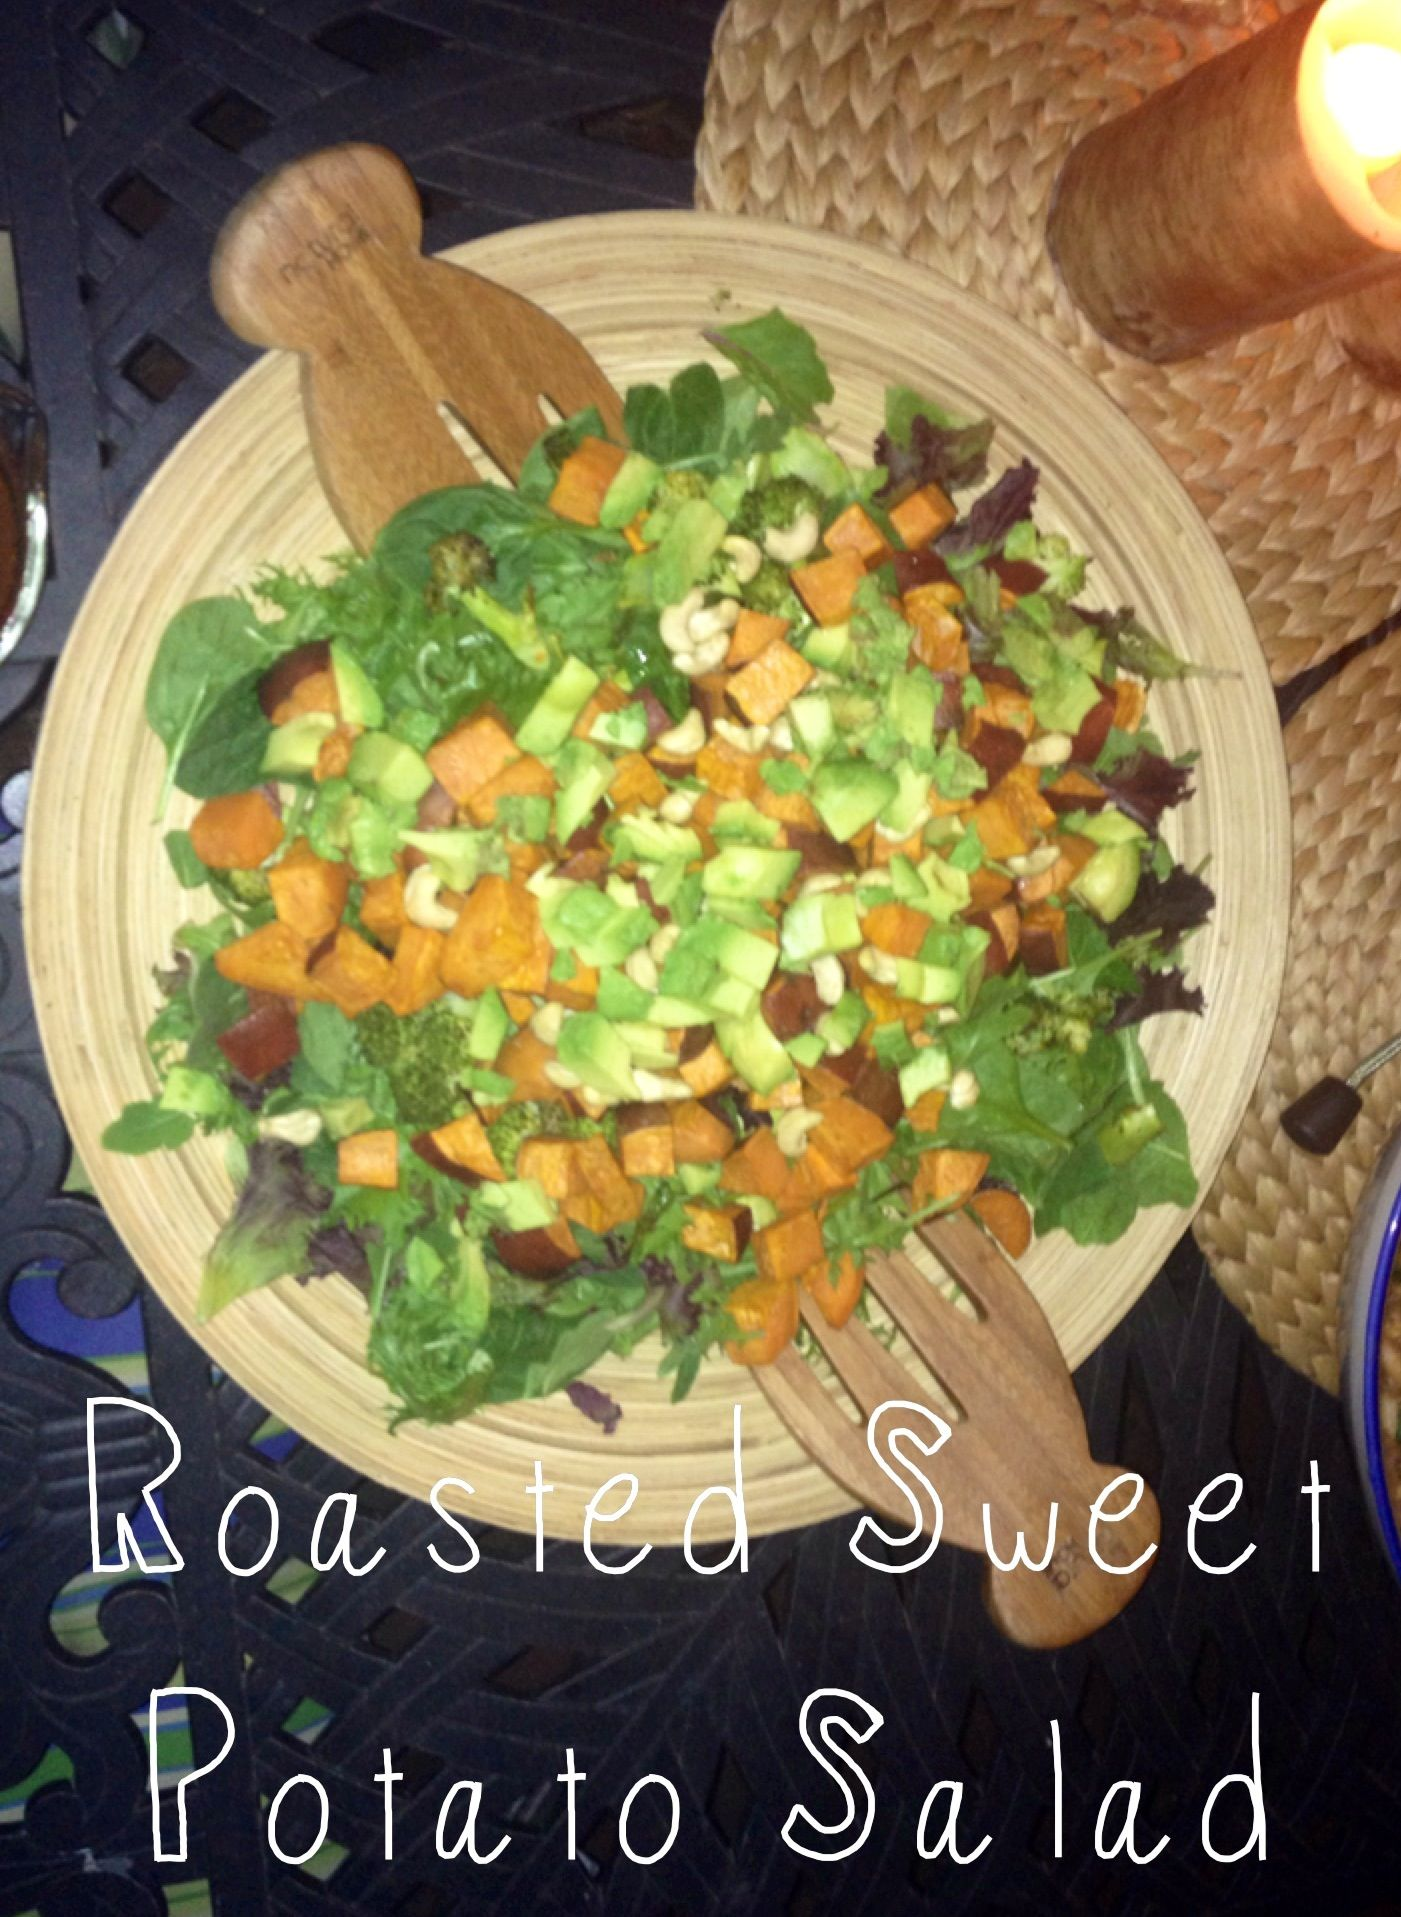 Roasted Sweet Potato Salad with Miso Dressing {Healthy & Delicious, Gluten Free, Vegan. Perfect for Autumn Entertaining!}